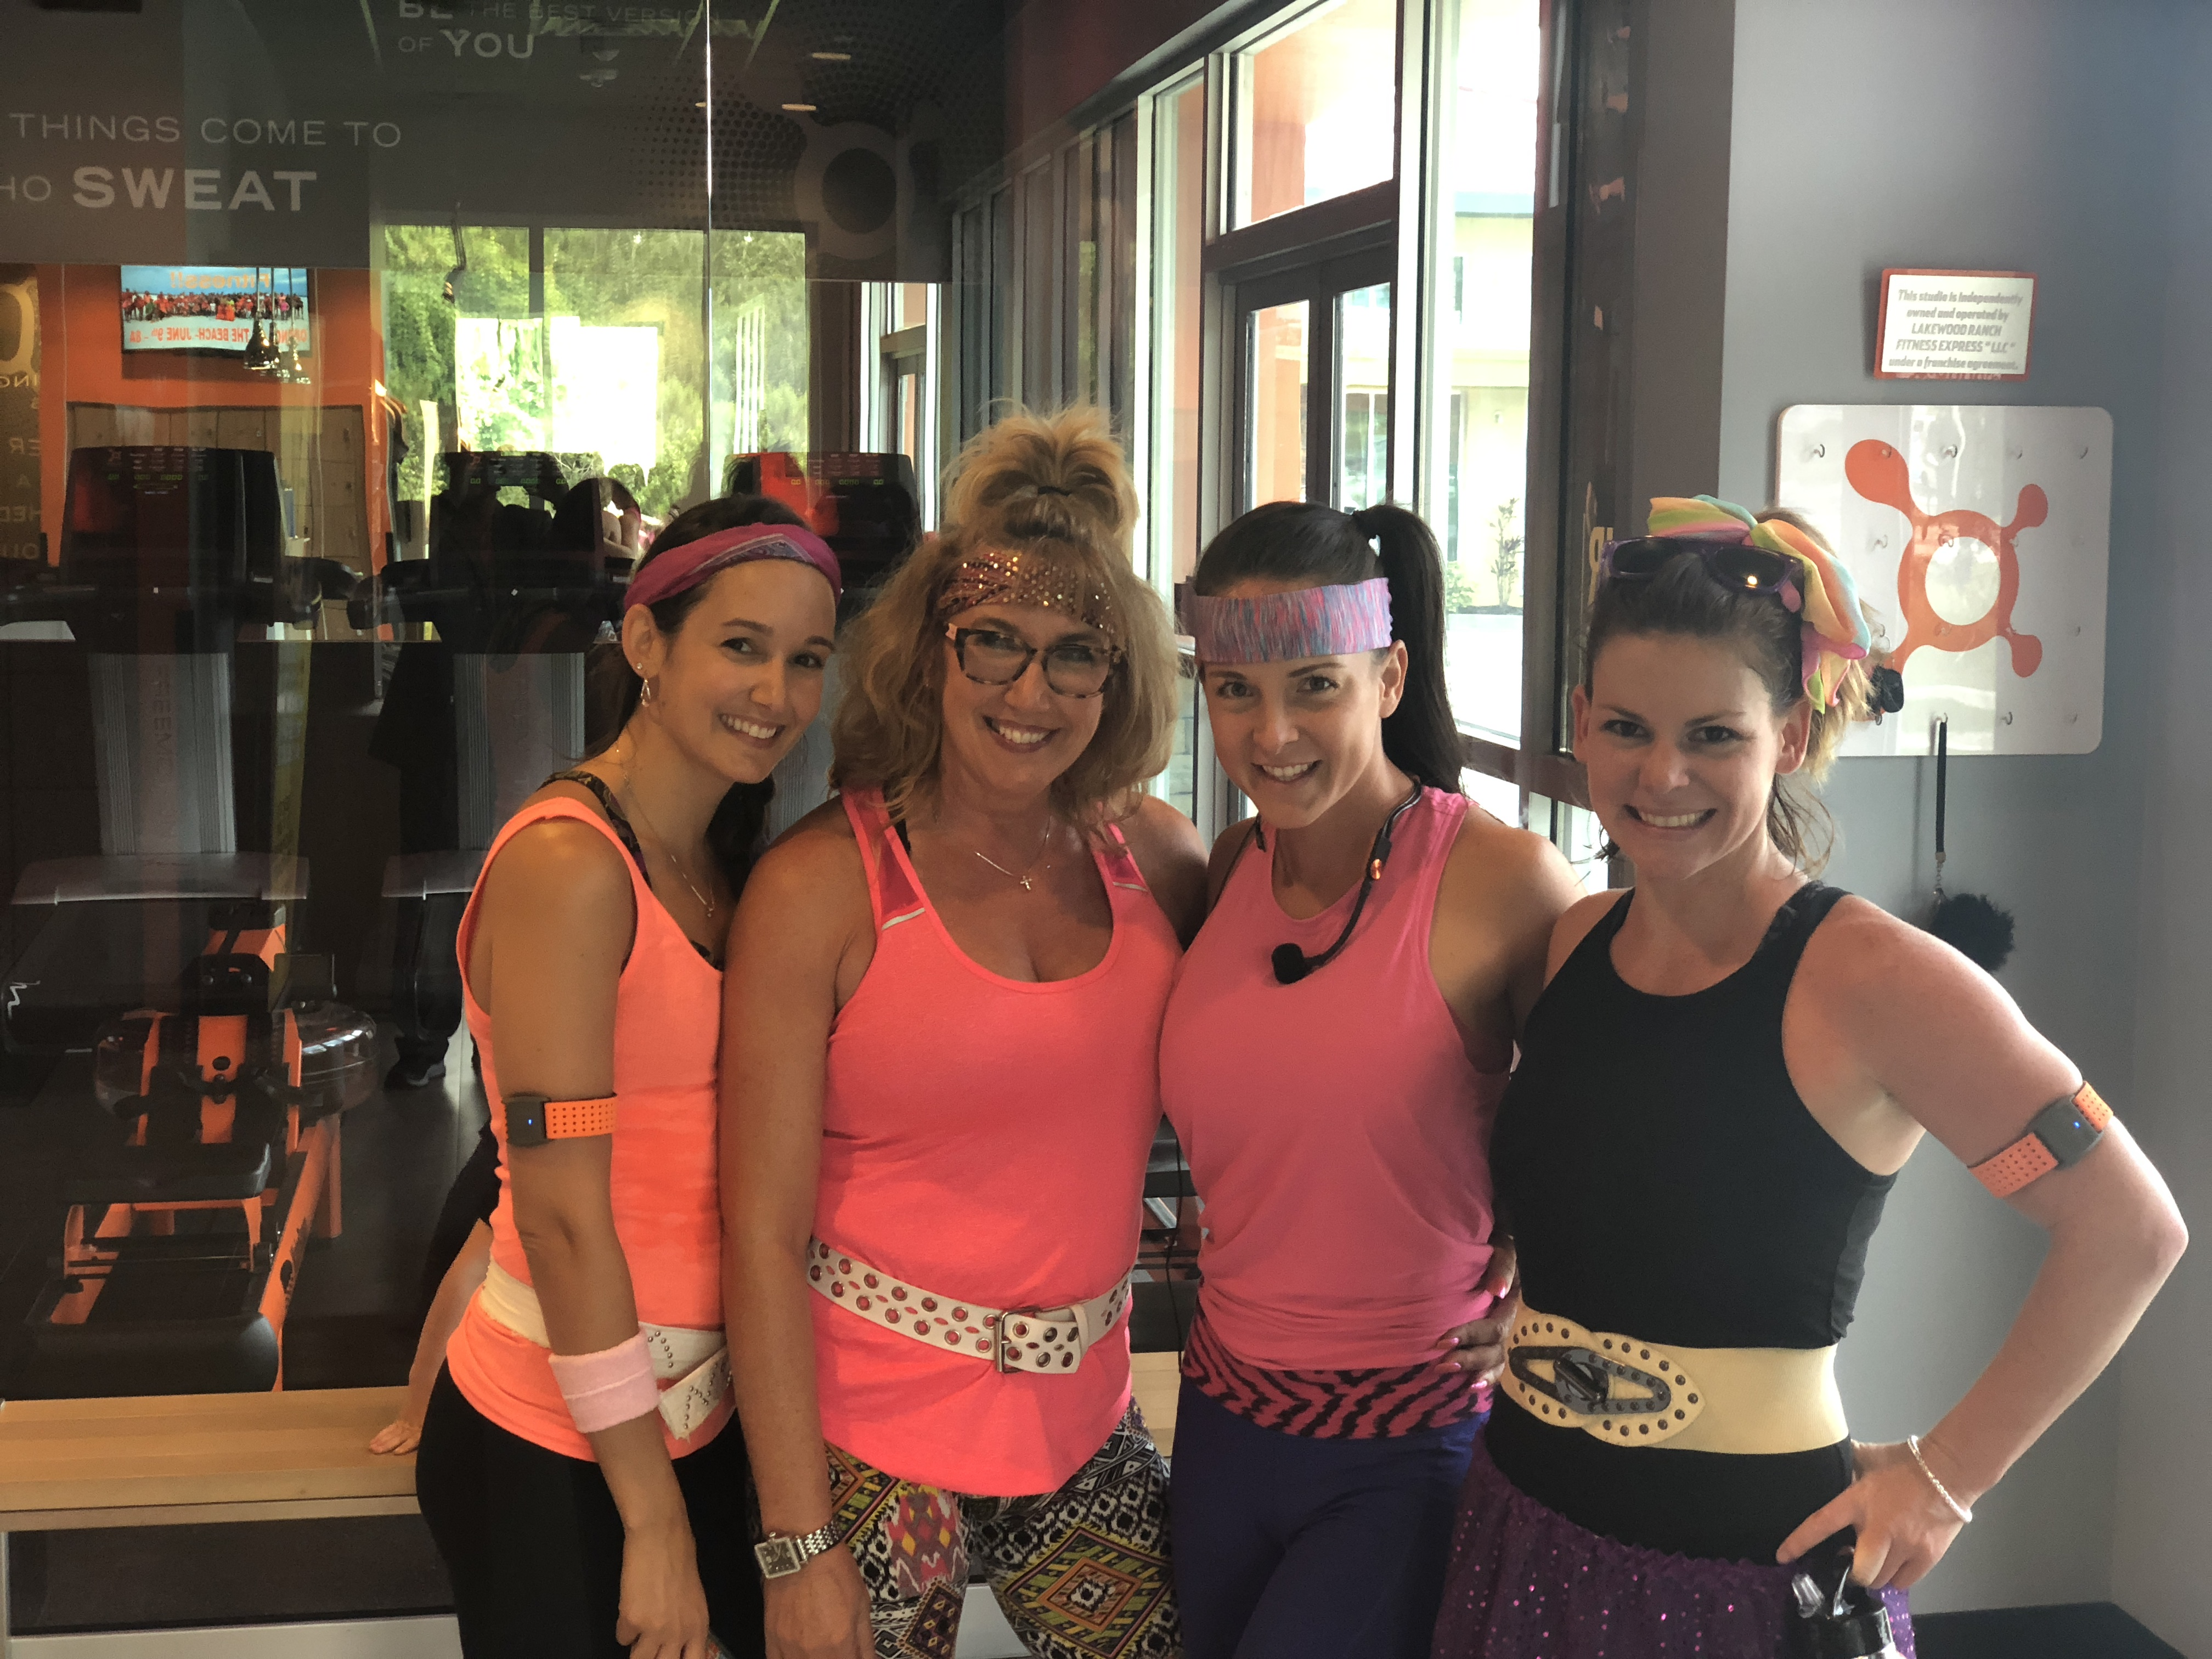 orangetheory fitness review – Erica dressed up for a theme week